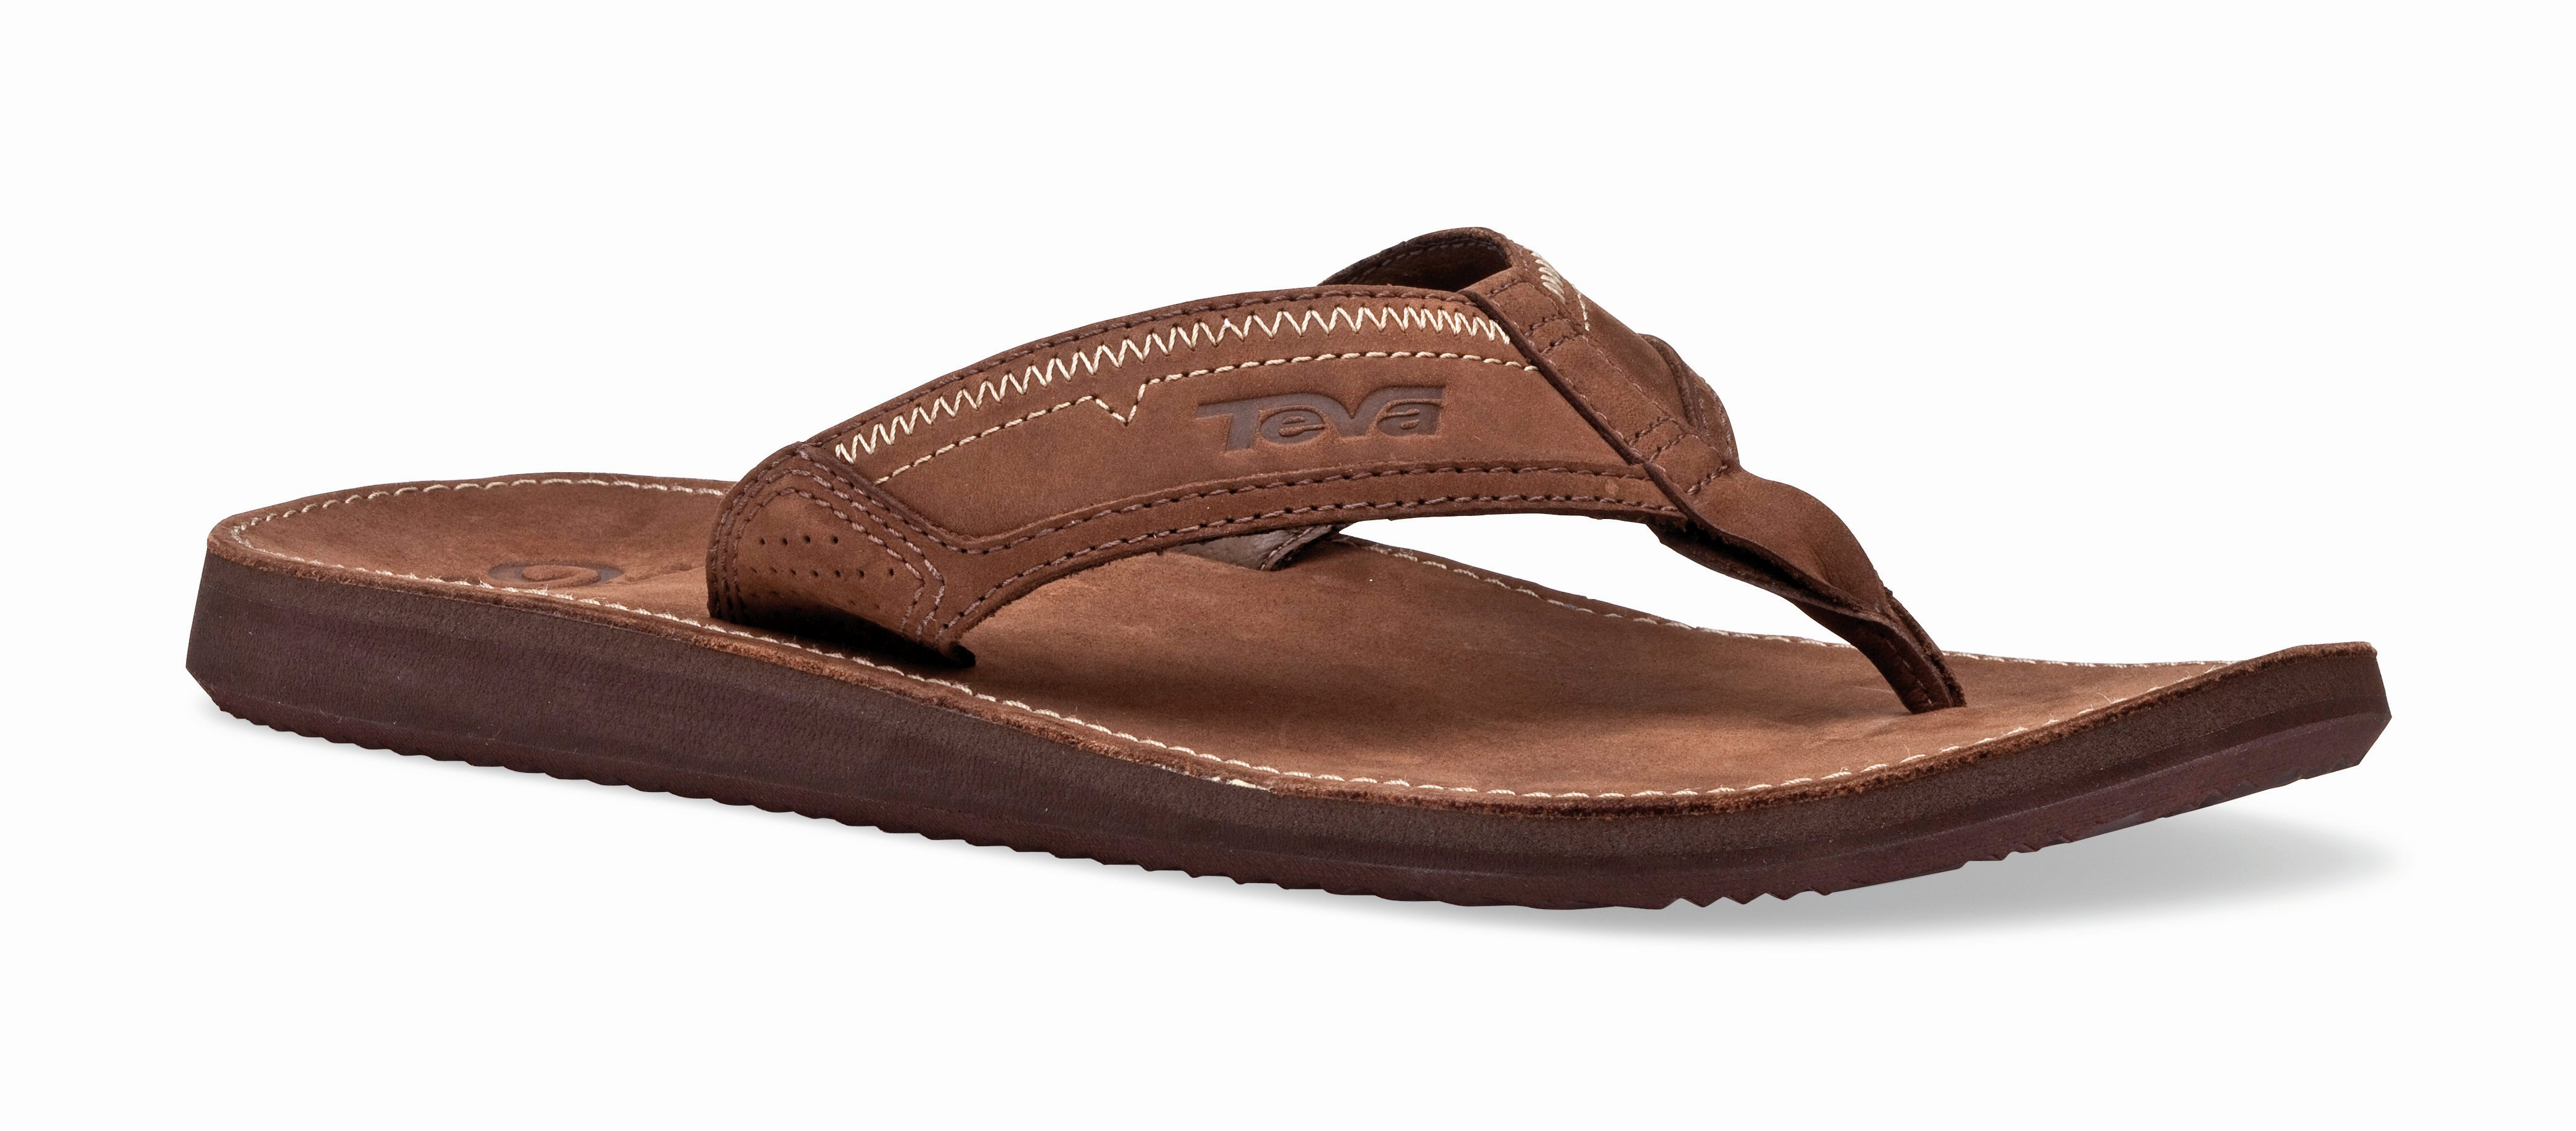 e7429bed6e23 Teva Benson M s brown - au